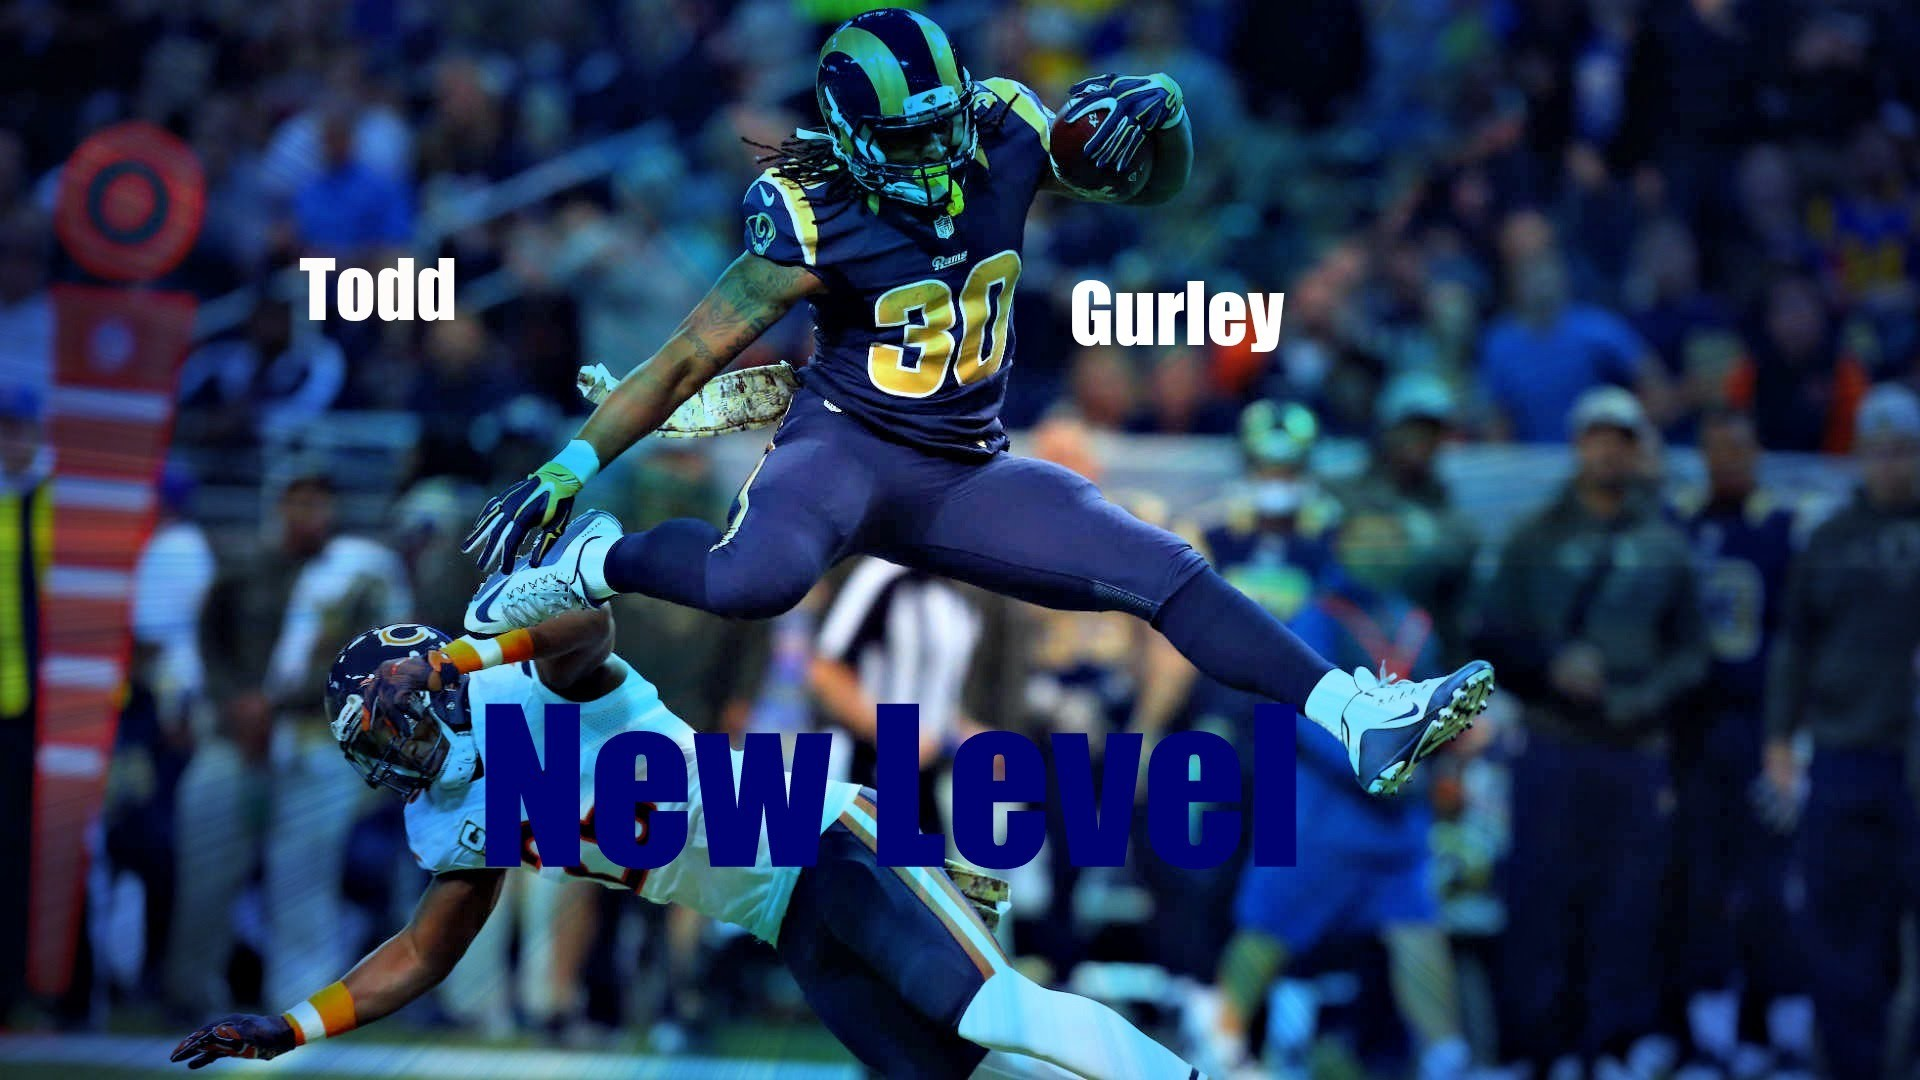 Galaxy S8 Wallpaper Hd Todd Gurley Wallpapers 76 Images